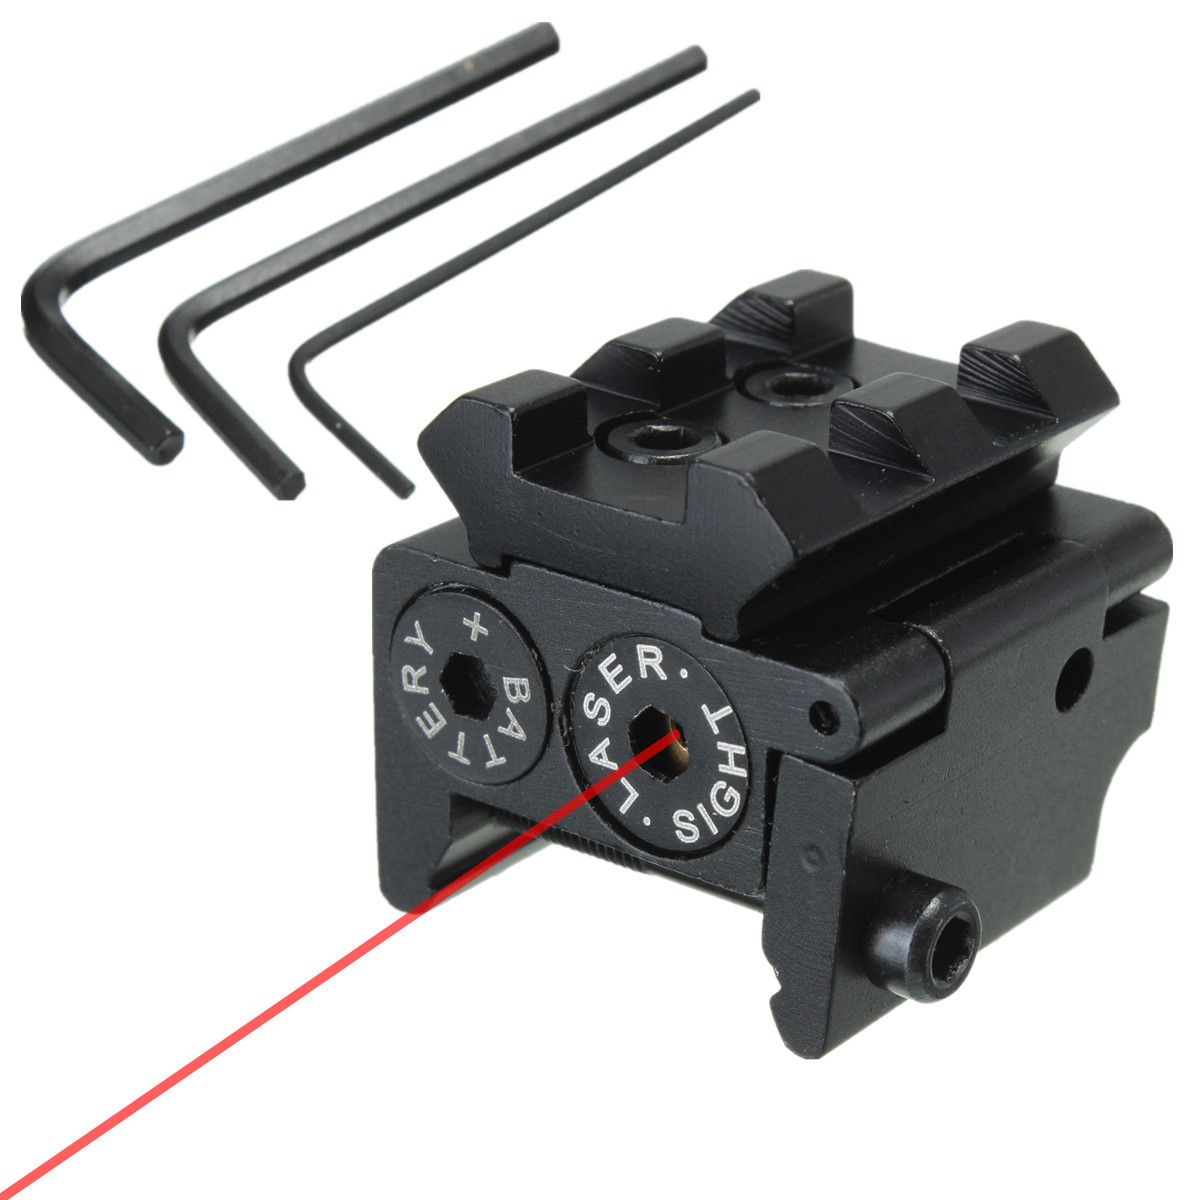 Mini Compact Tactical Red Dot Laser Bore Sight Scope With 20mm Picatinny Rail Mount tactical 4x32 red optics fiber rifle scope picatinny rail adapter hunting shooting rbo m5135